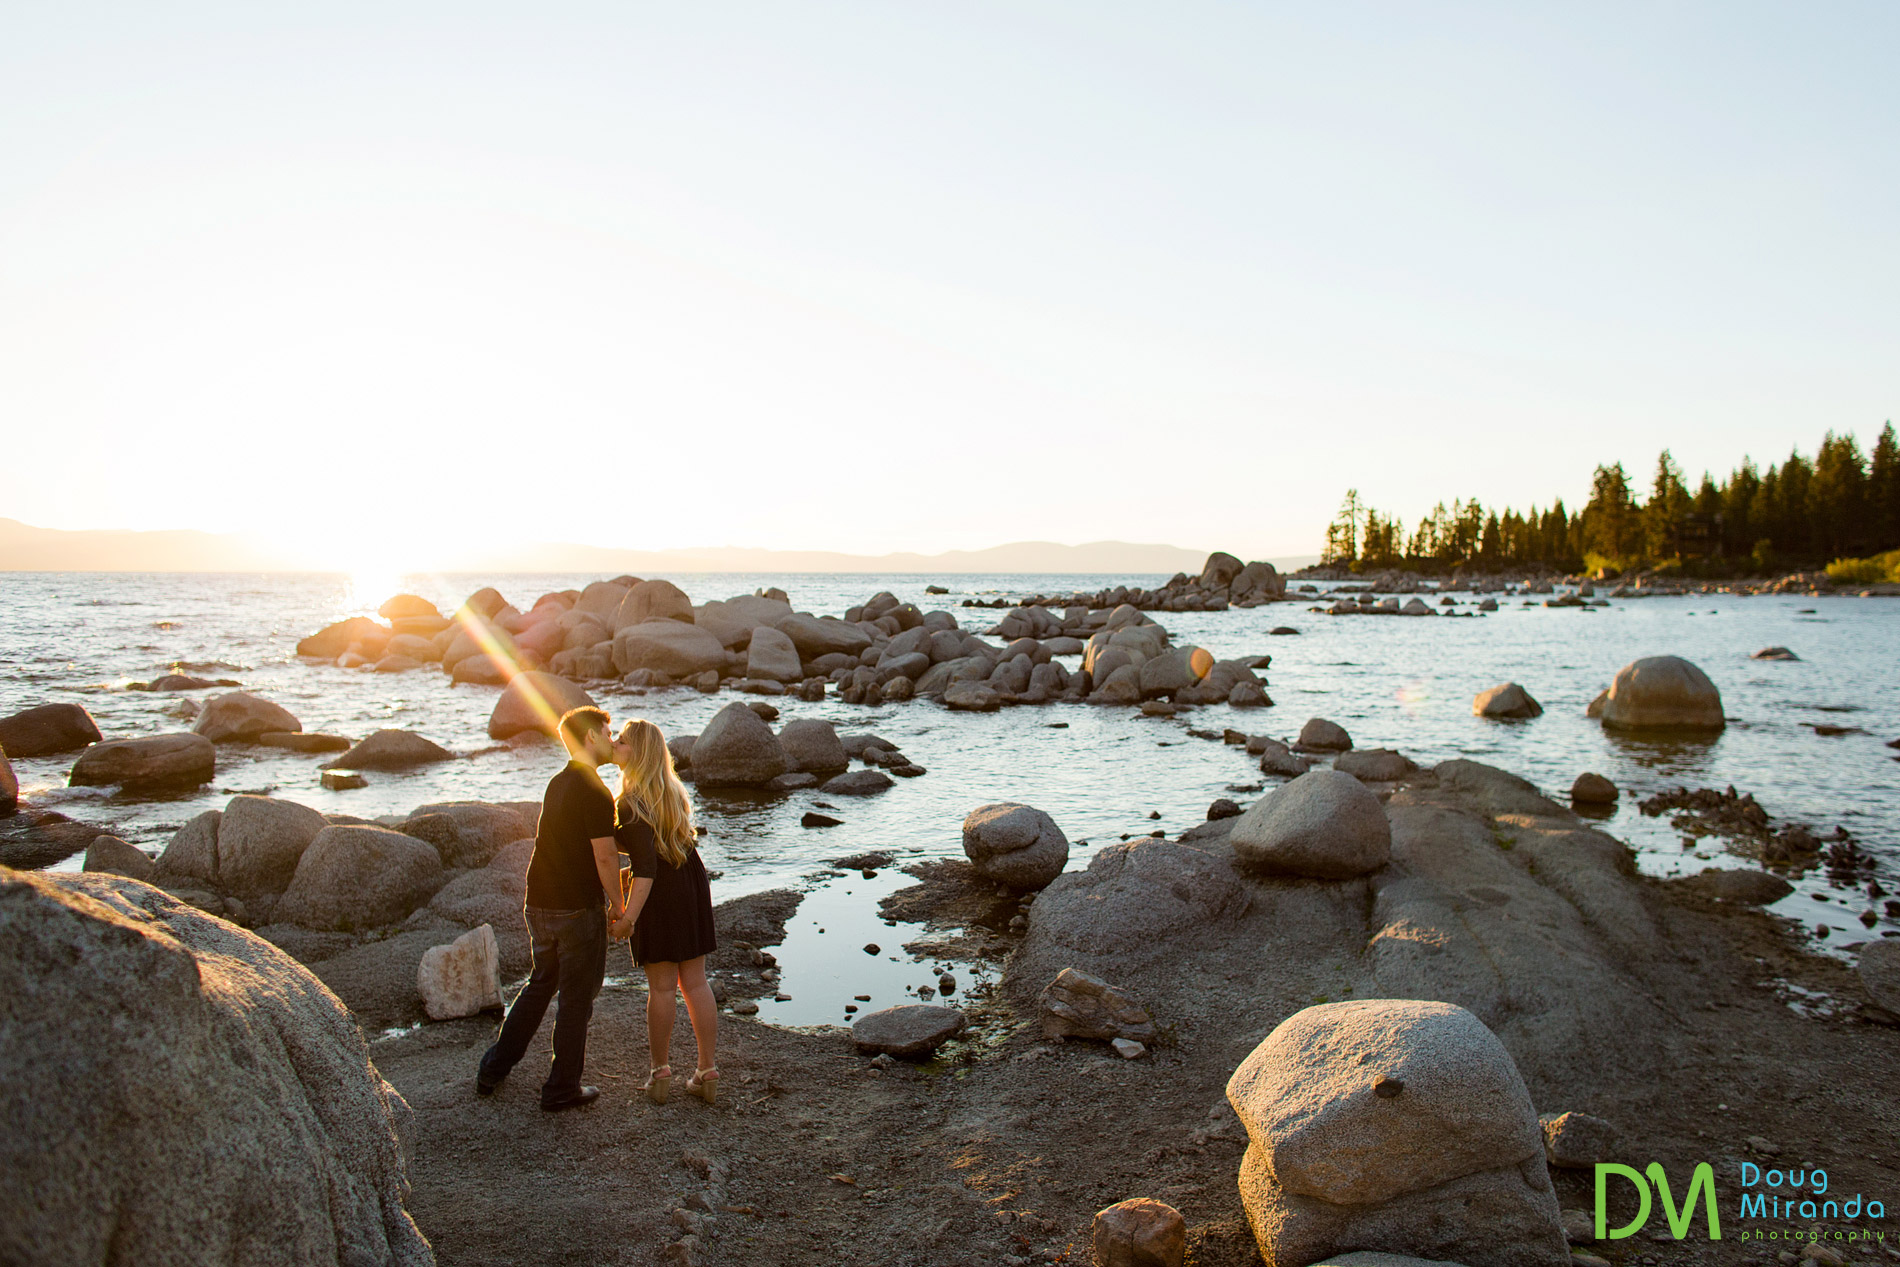 The light was so stunning at  sunset that afternoon at Zephyr Cove.